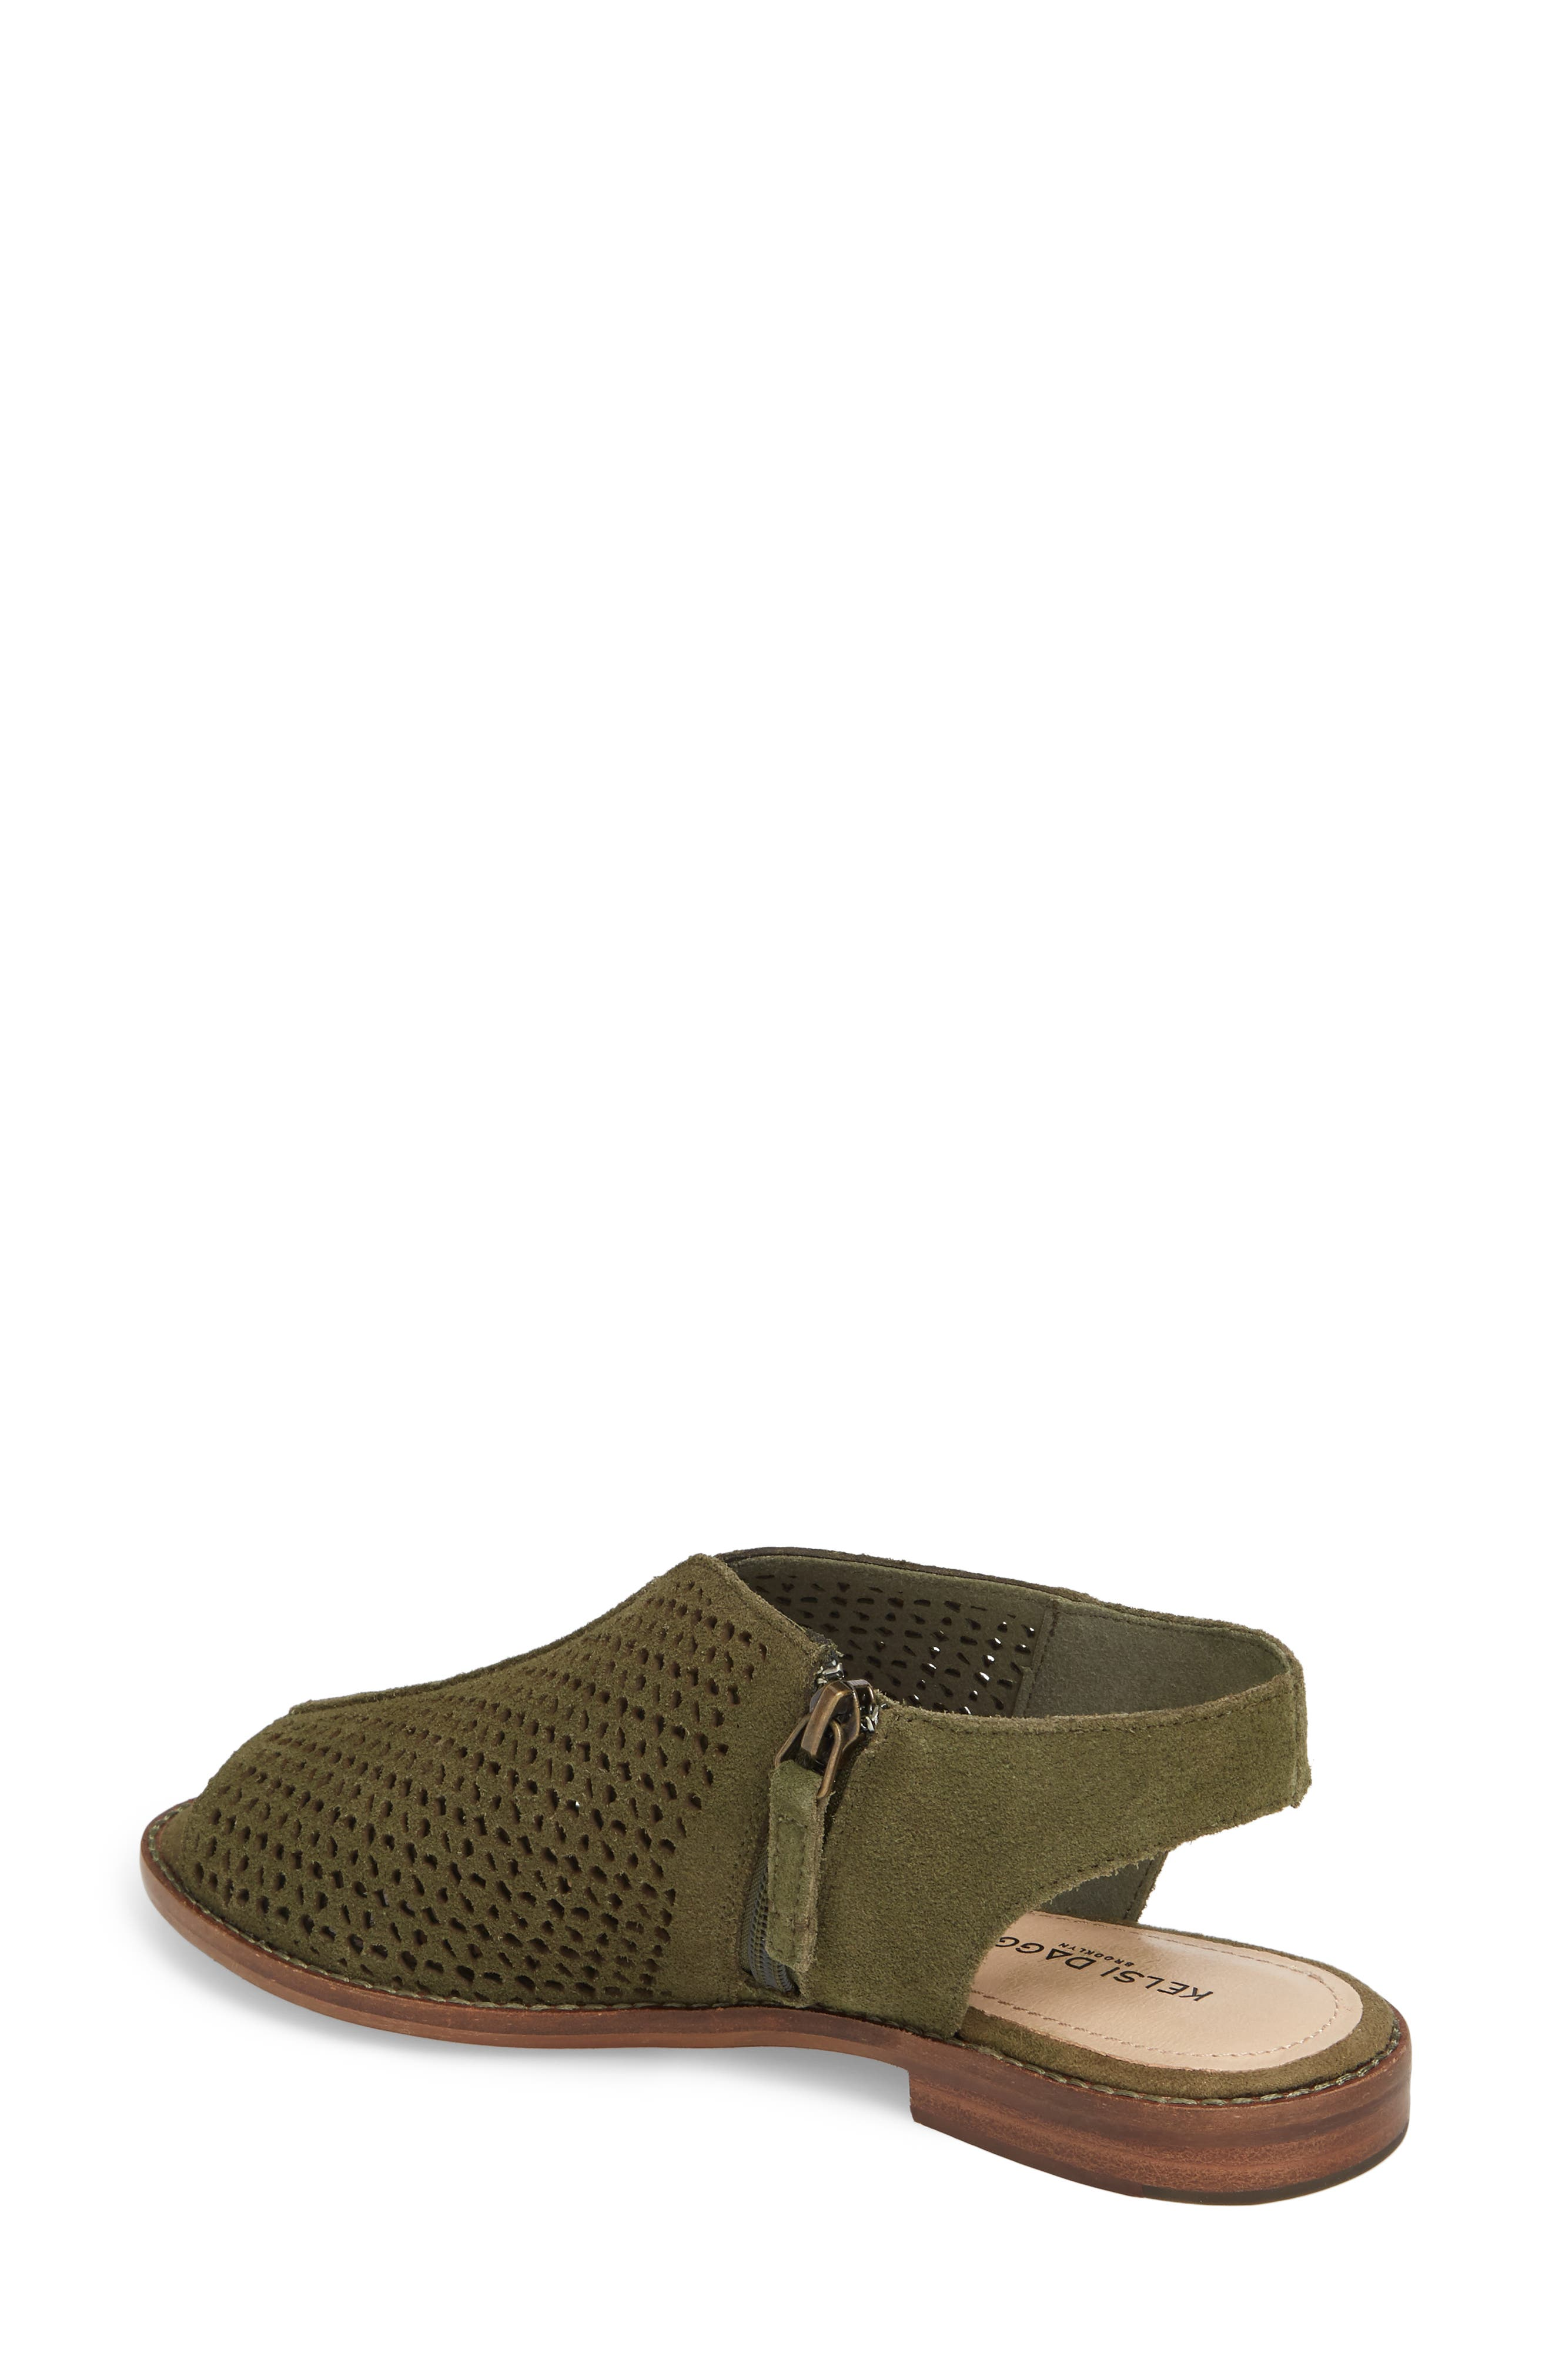 Seneca Perforated Sandal,                             Alternate thumbnail 2, color,                             Olive